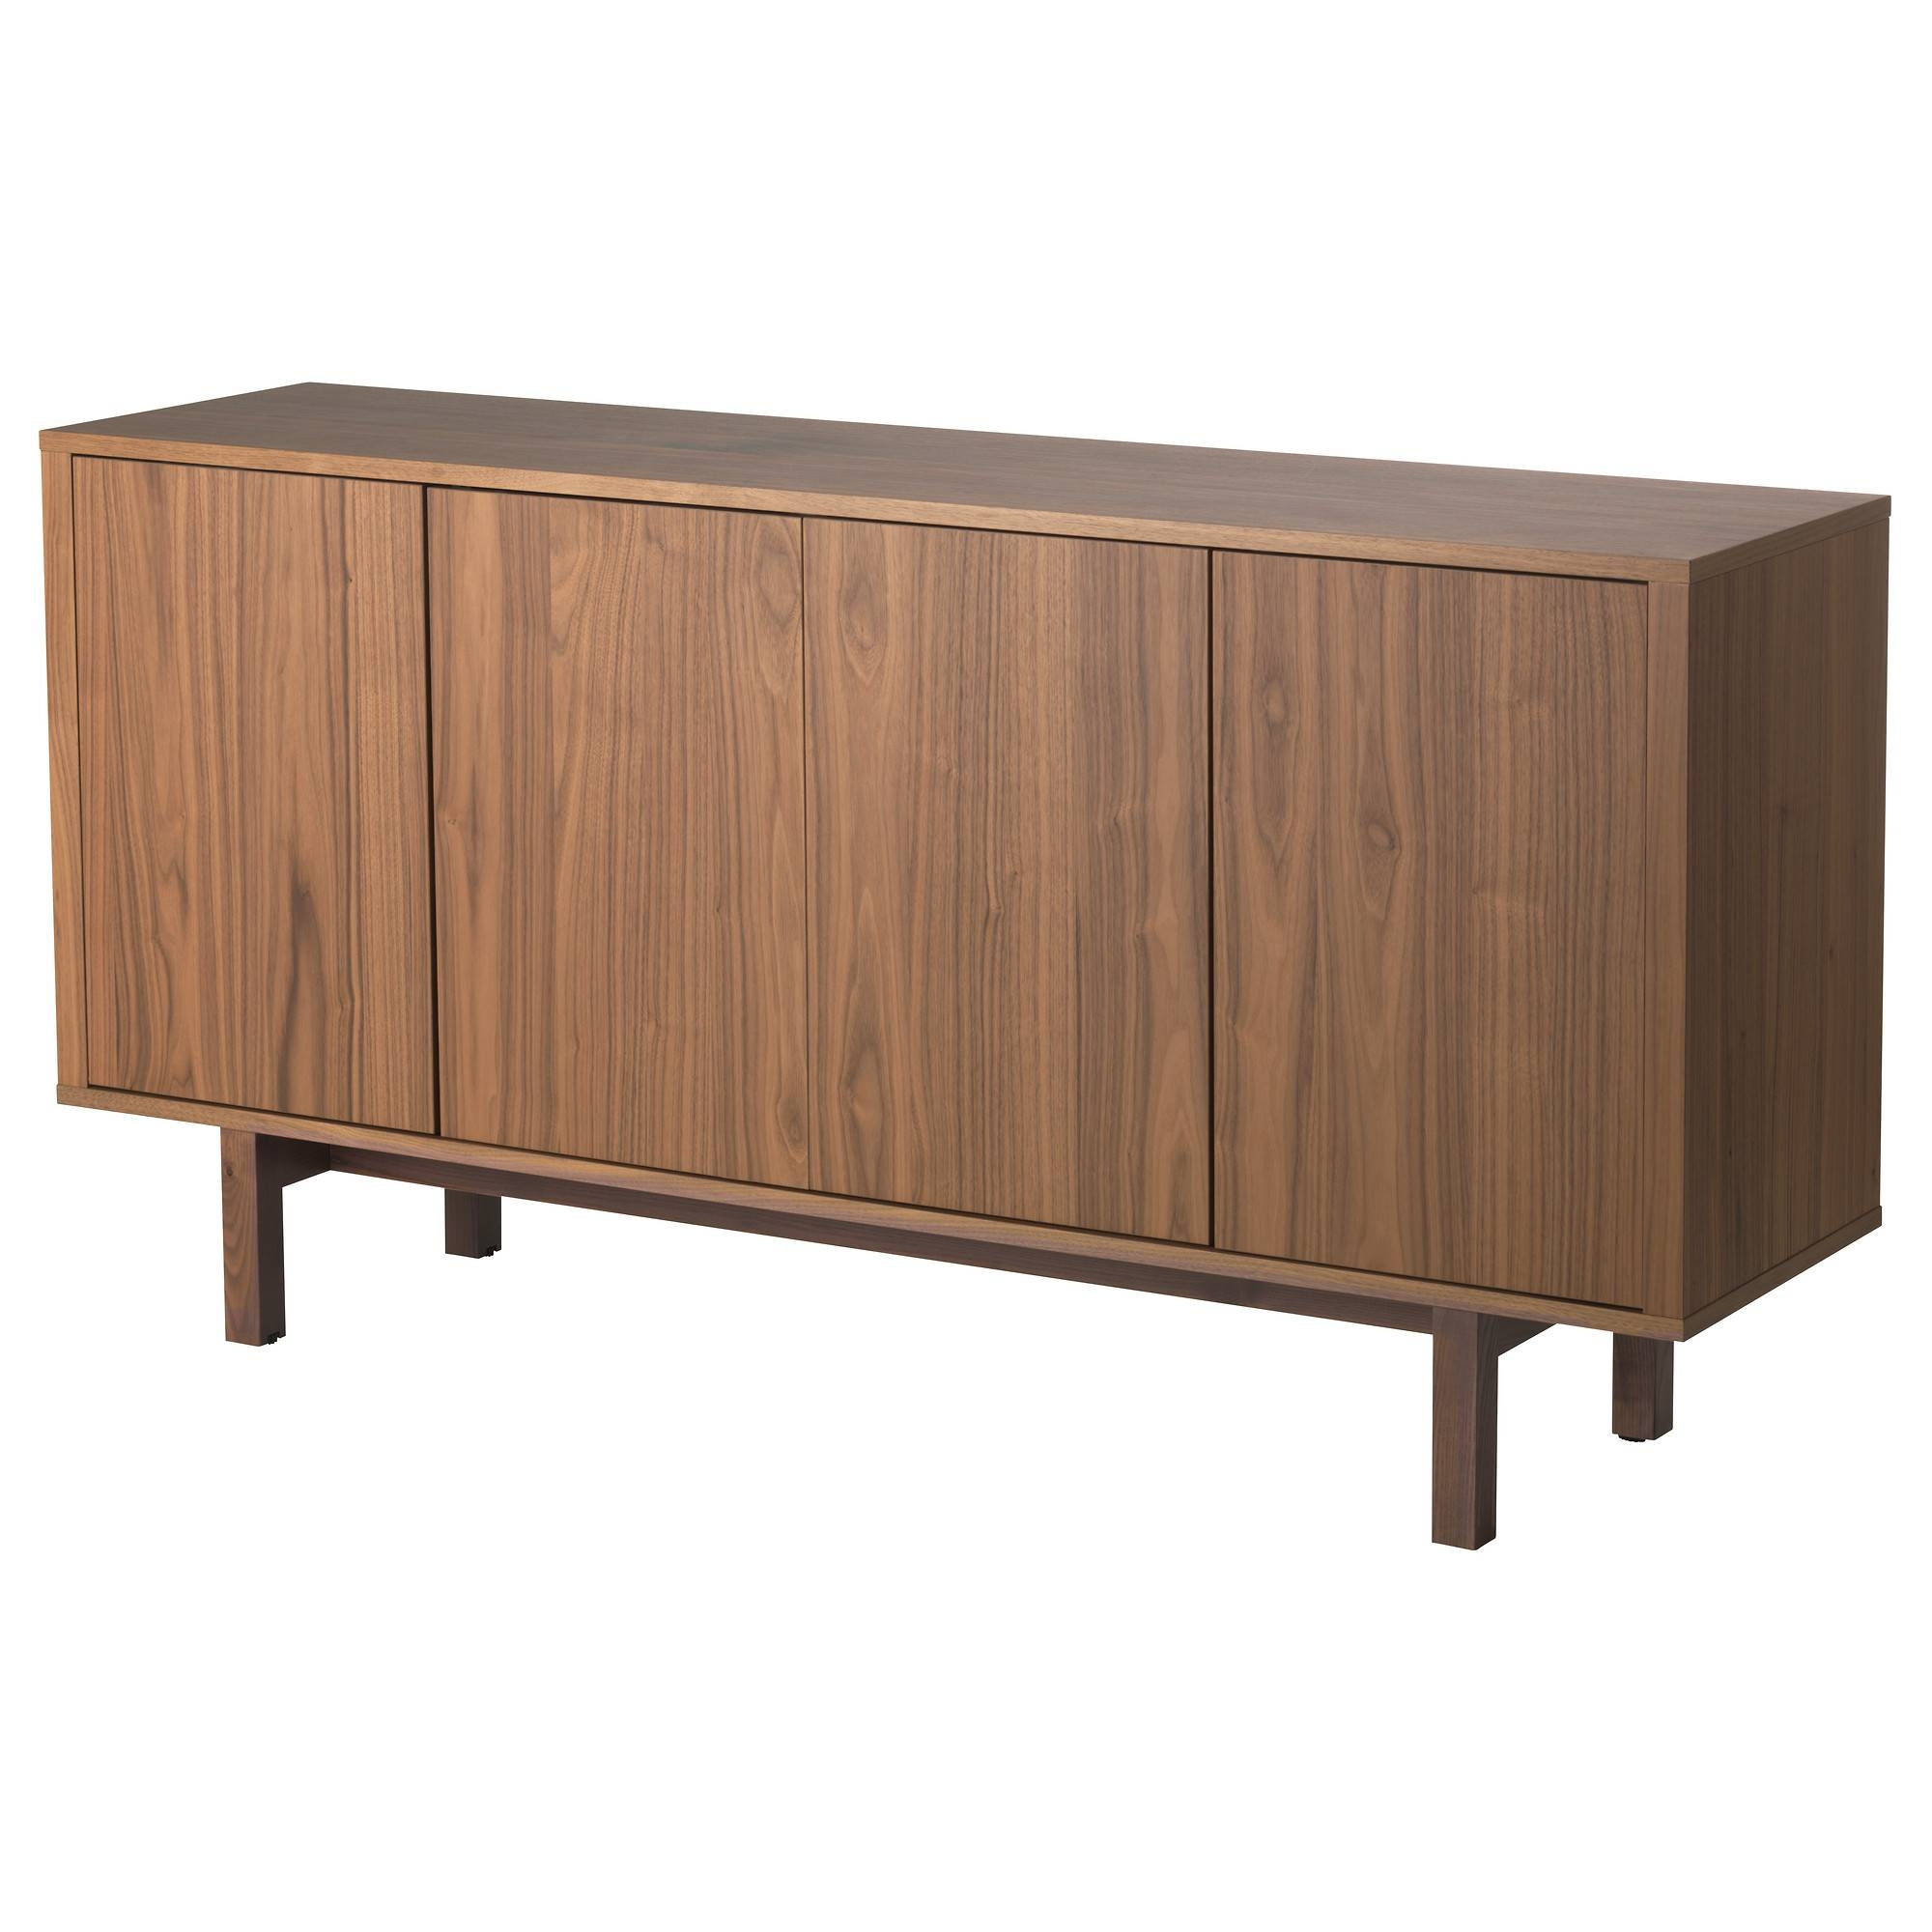 Buffet Tables & Sideboards - Ikea in Small Low Sideboards (Image 1 of 15)